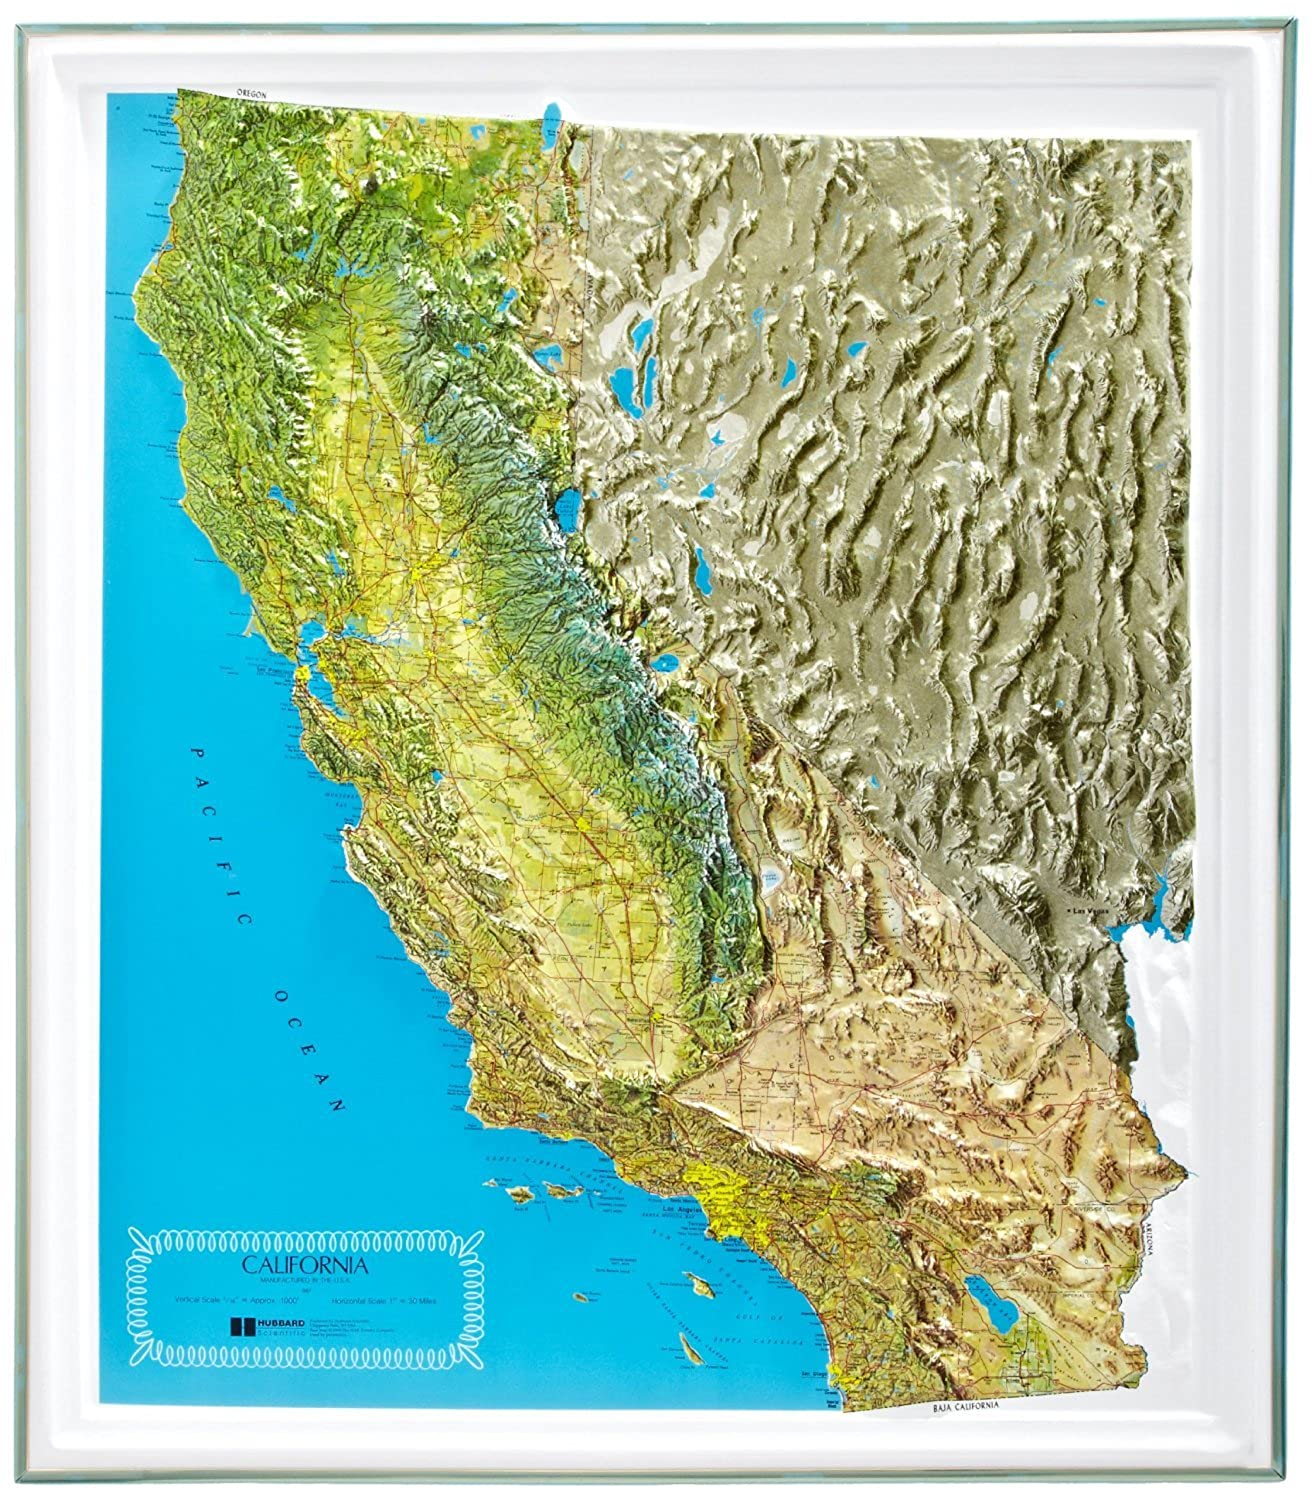 American Educational California NCR Series Map with Gold Plastic Frame, 25-1/2' Length x 22-1/2' Width [並行輸入品]